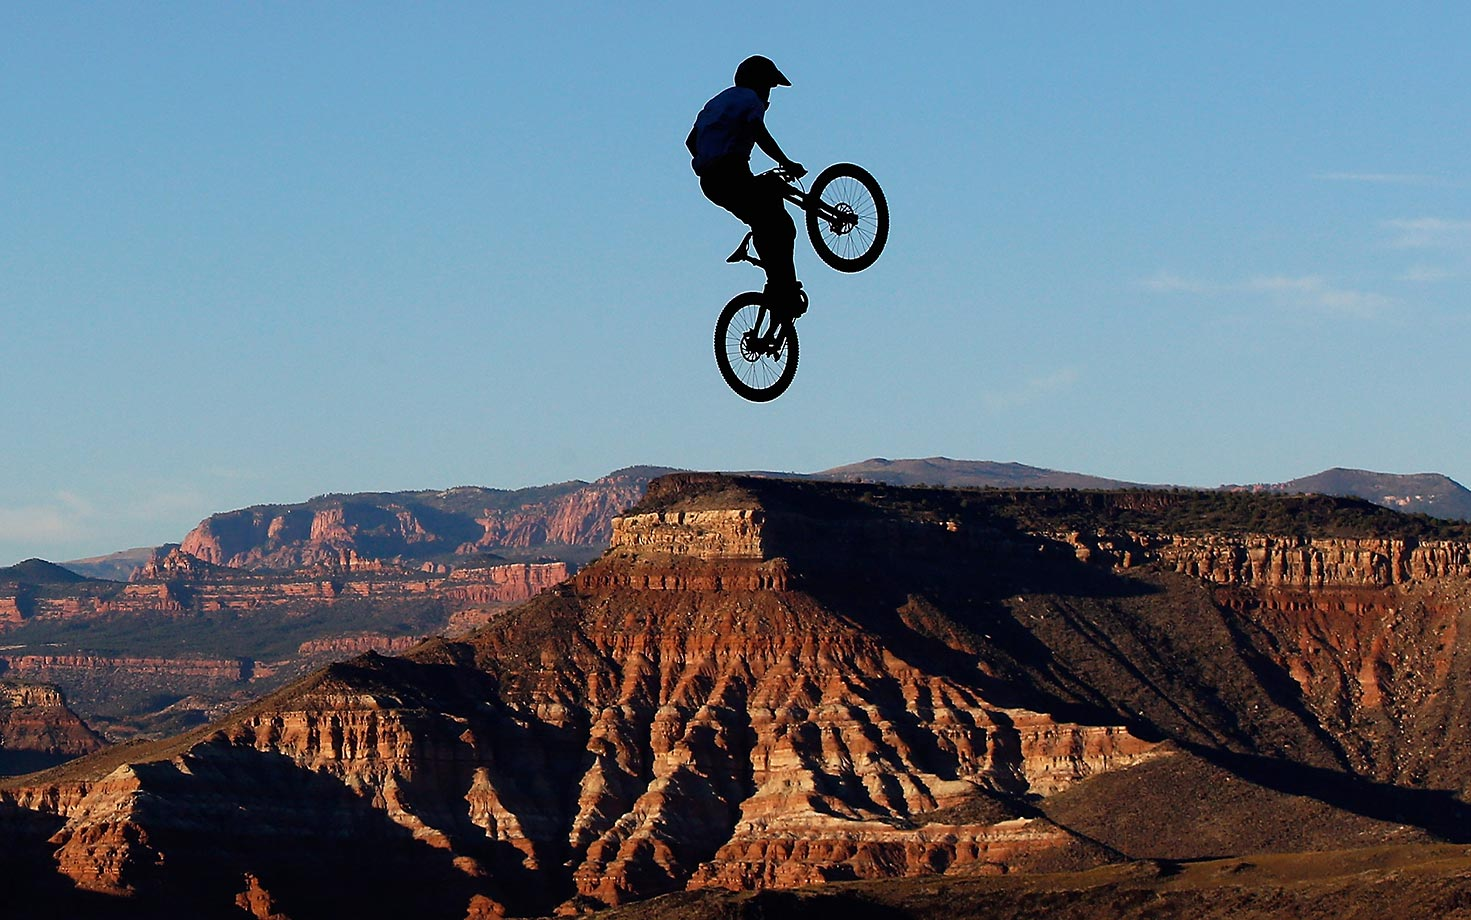 Nicholi Rogatkin goes over a jump for the Red Bull Rampage in Utah.